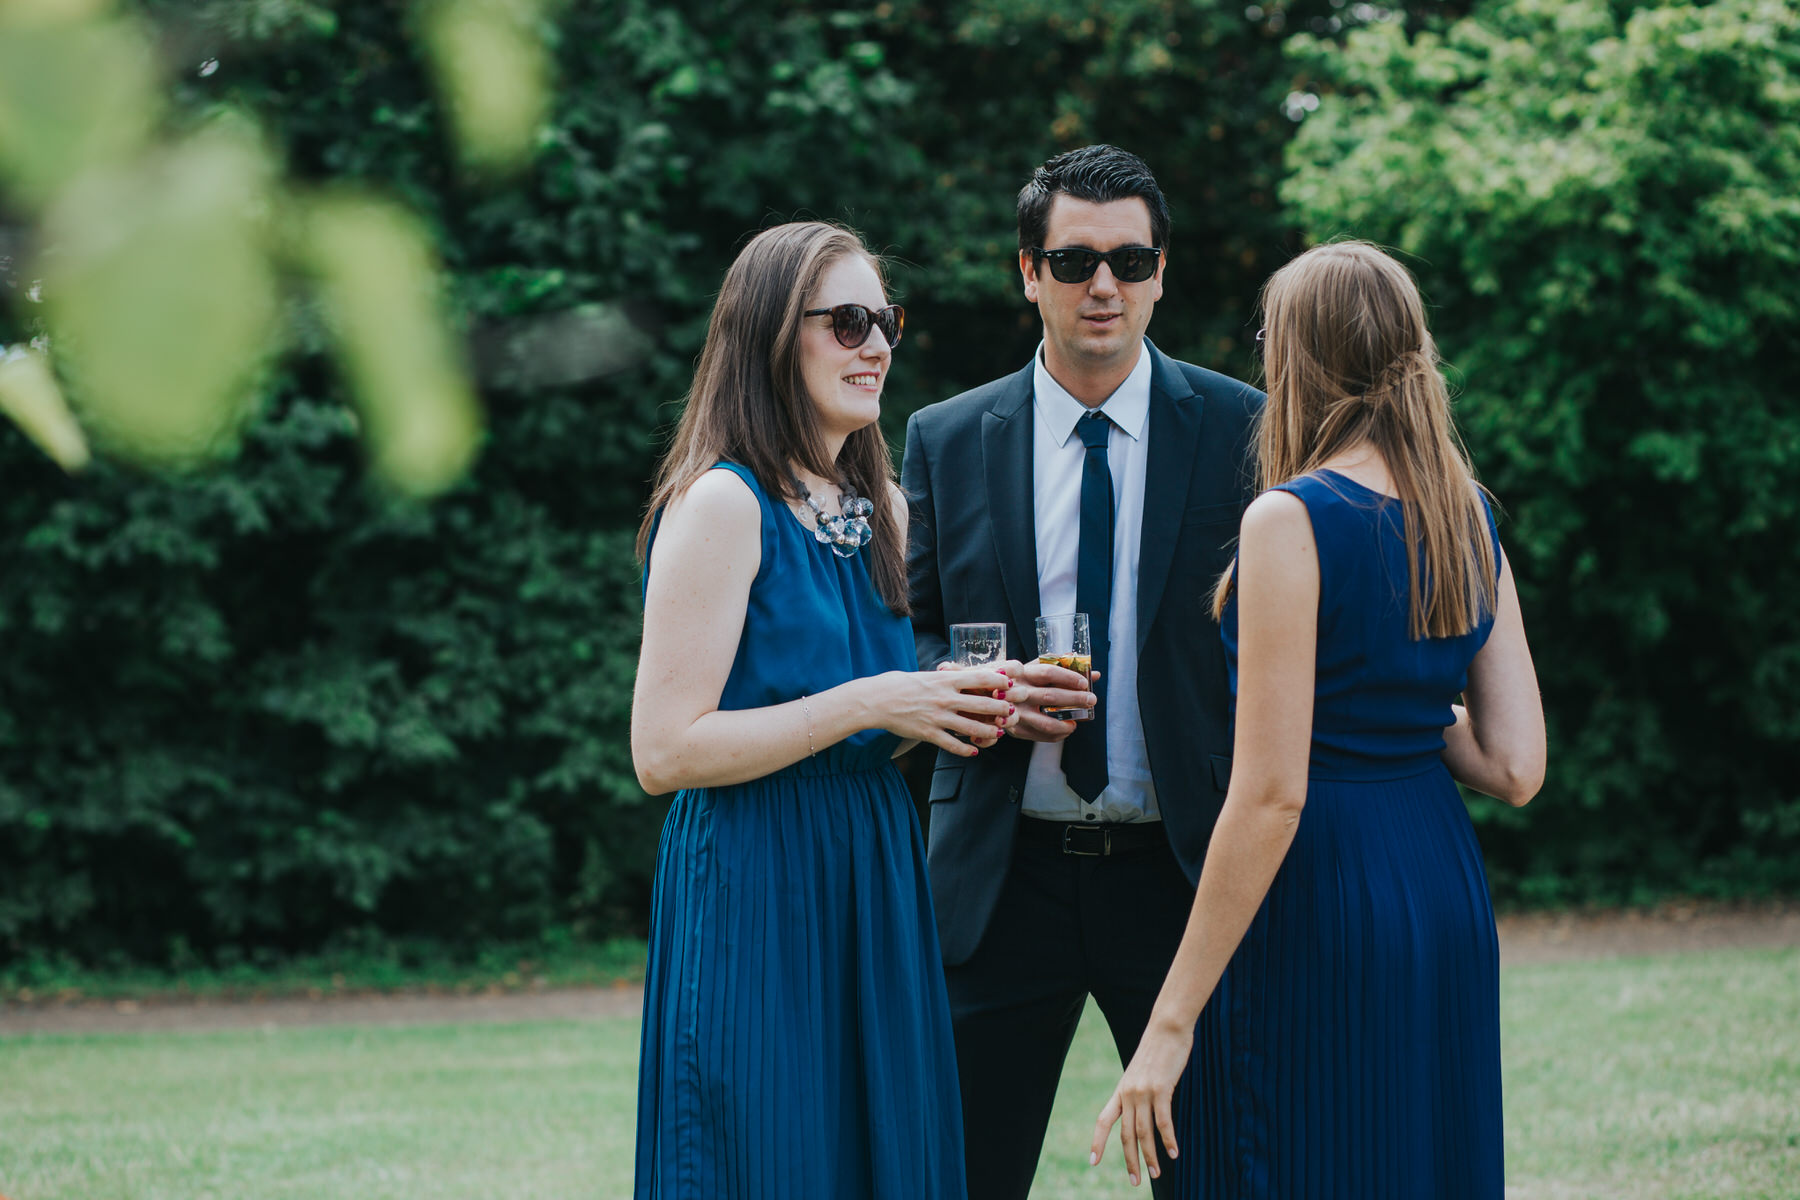 141-Pembroke Lodge South Lawn wedding drinks reception.jpg